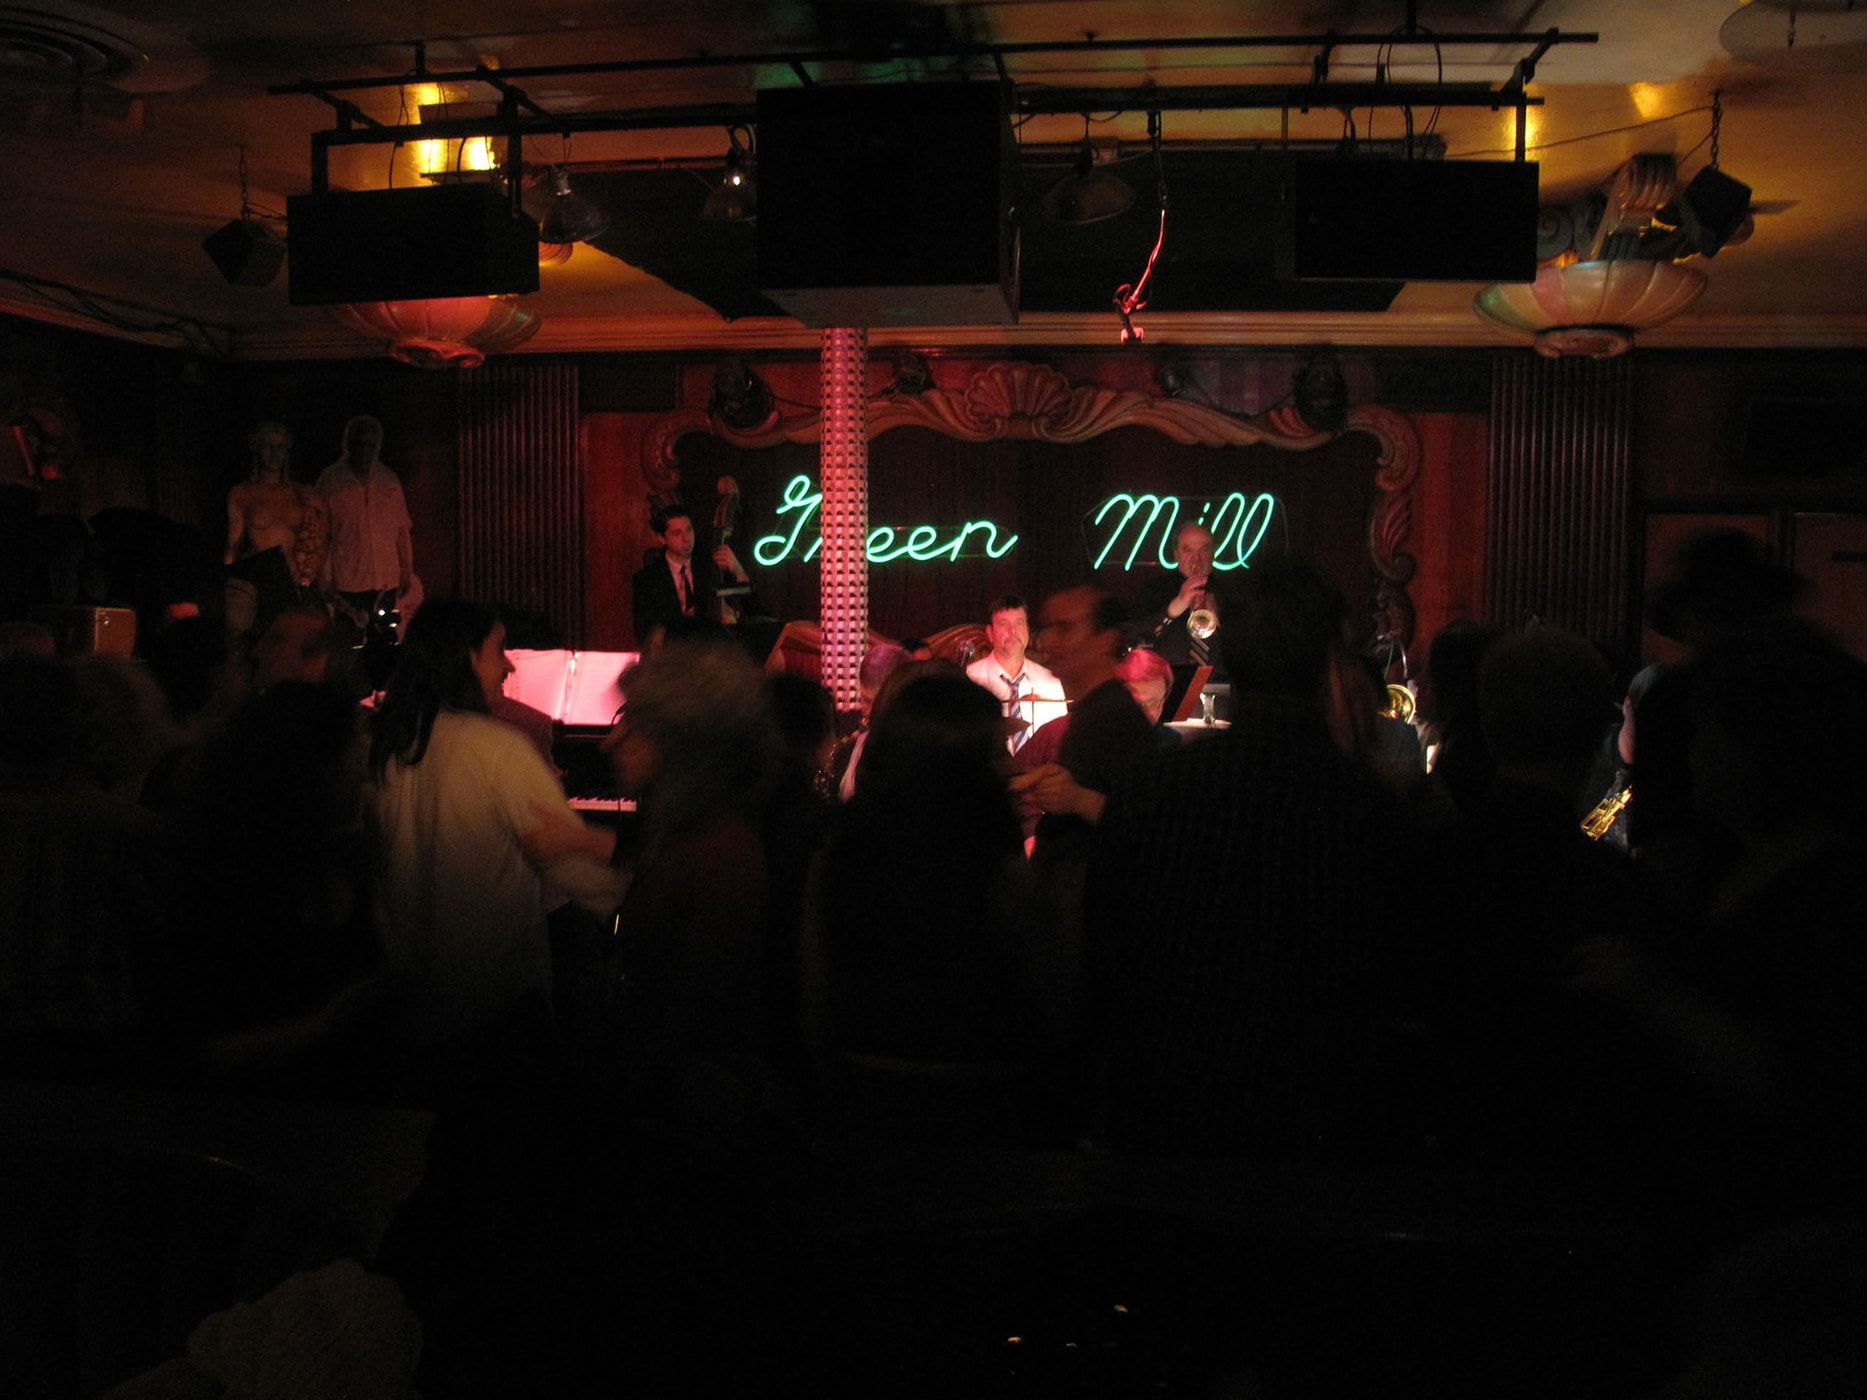 Green Mill in Chicago, Illinois